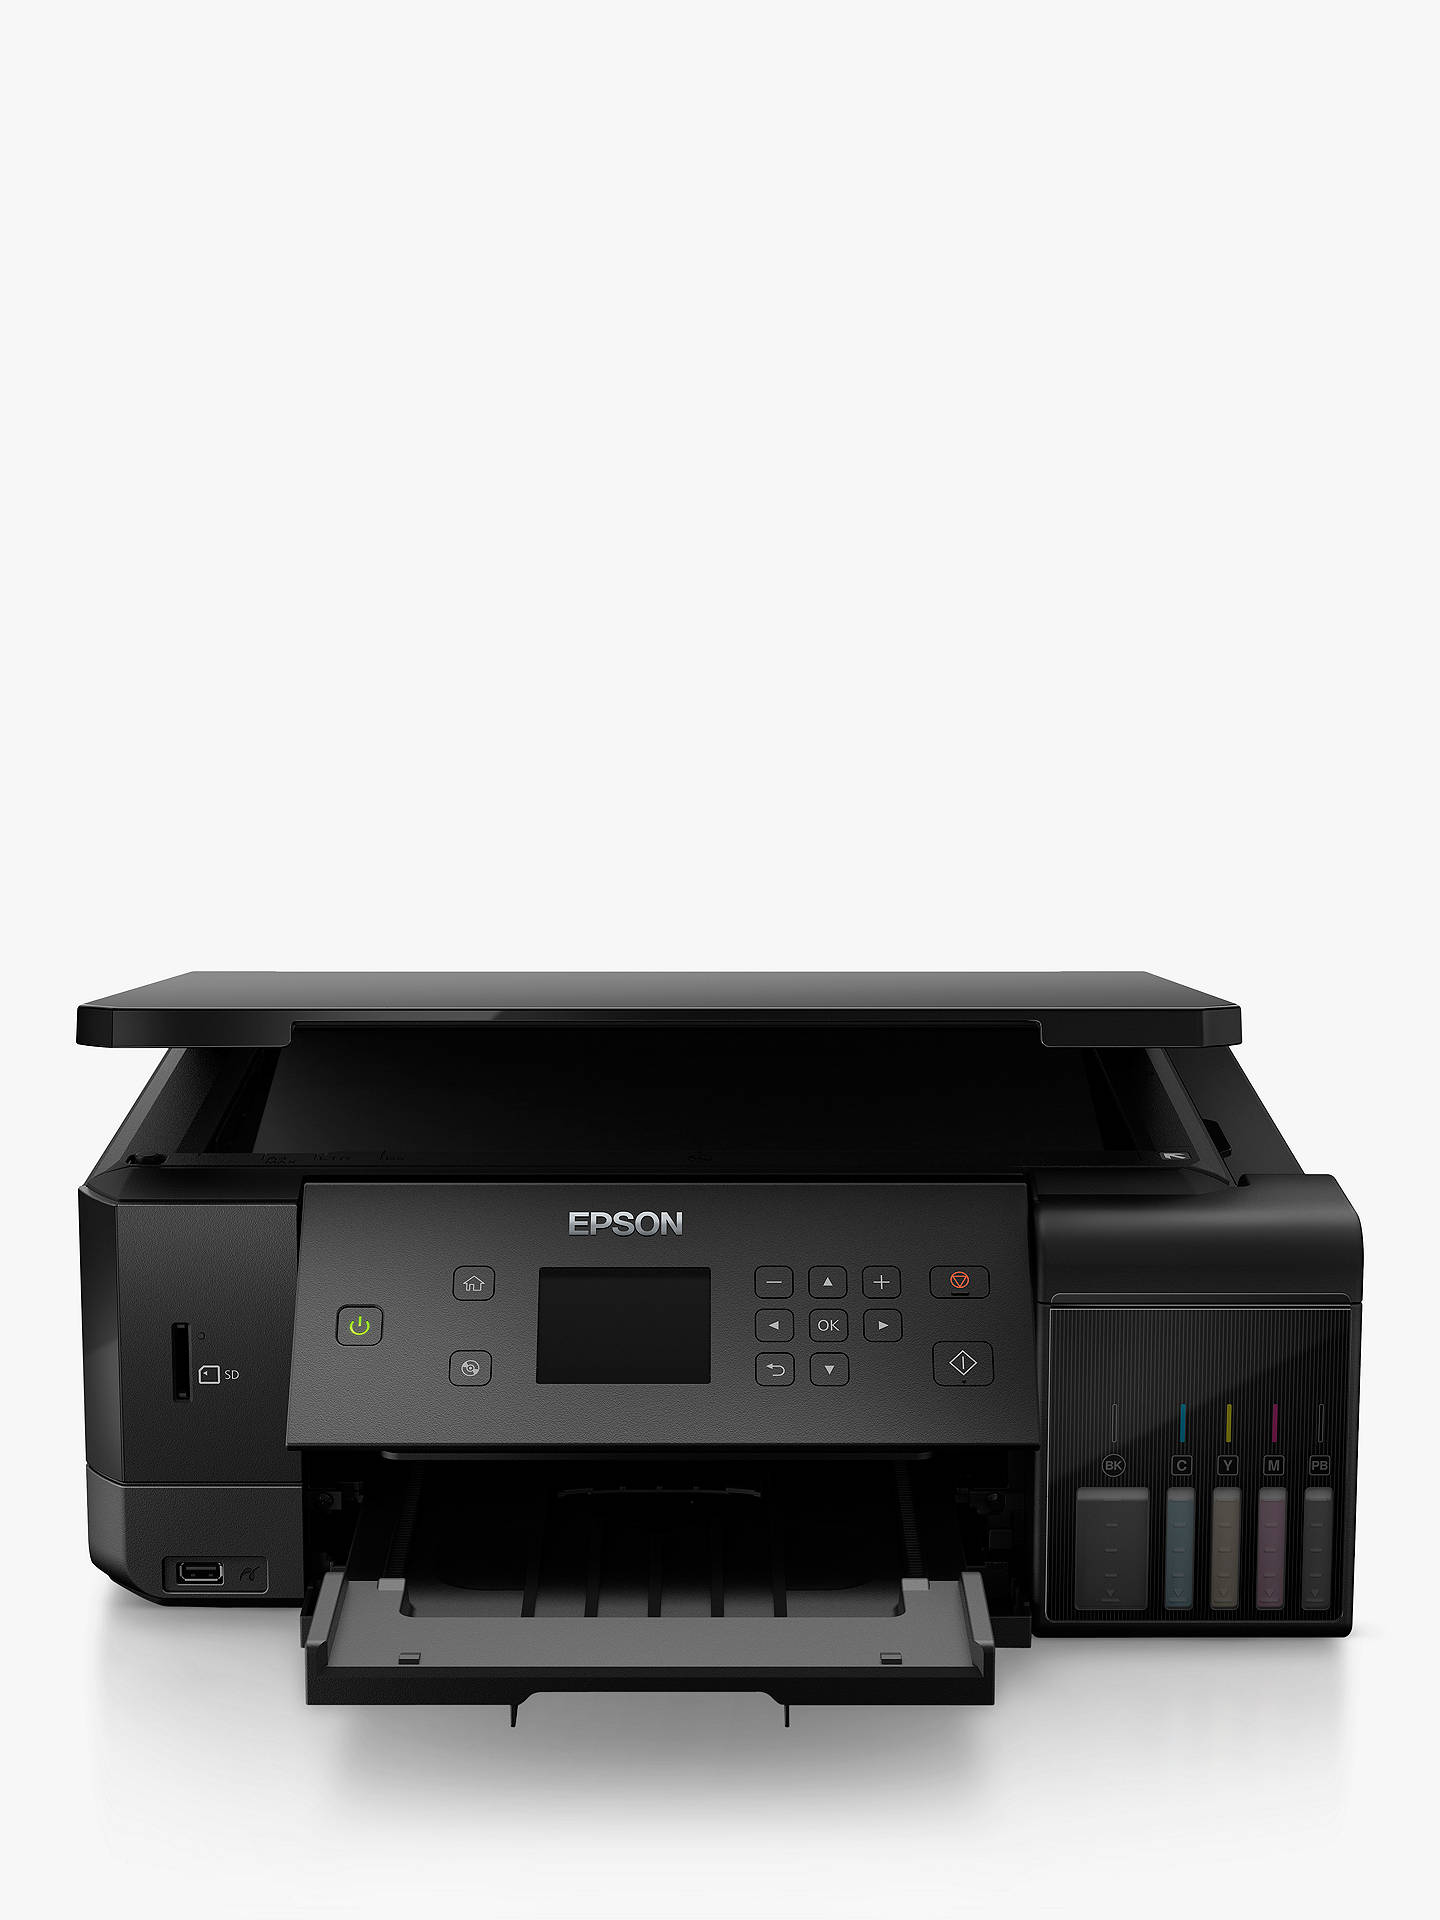 Epson EcoTank ET-7700 Three-In-One Wi-Fi Printer with High Capacity  Integrated Ink Tank System & 2 Years Ink Supply Included